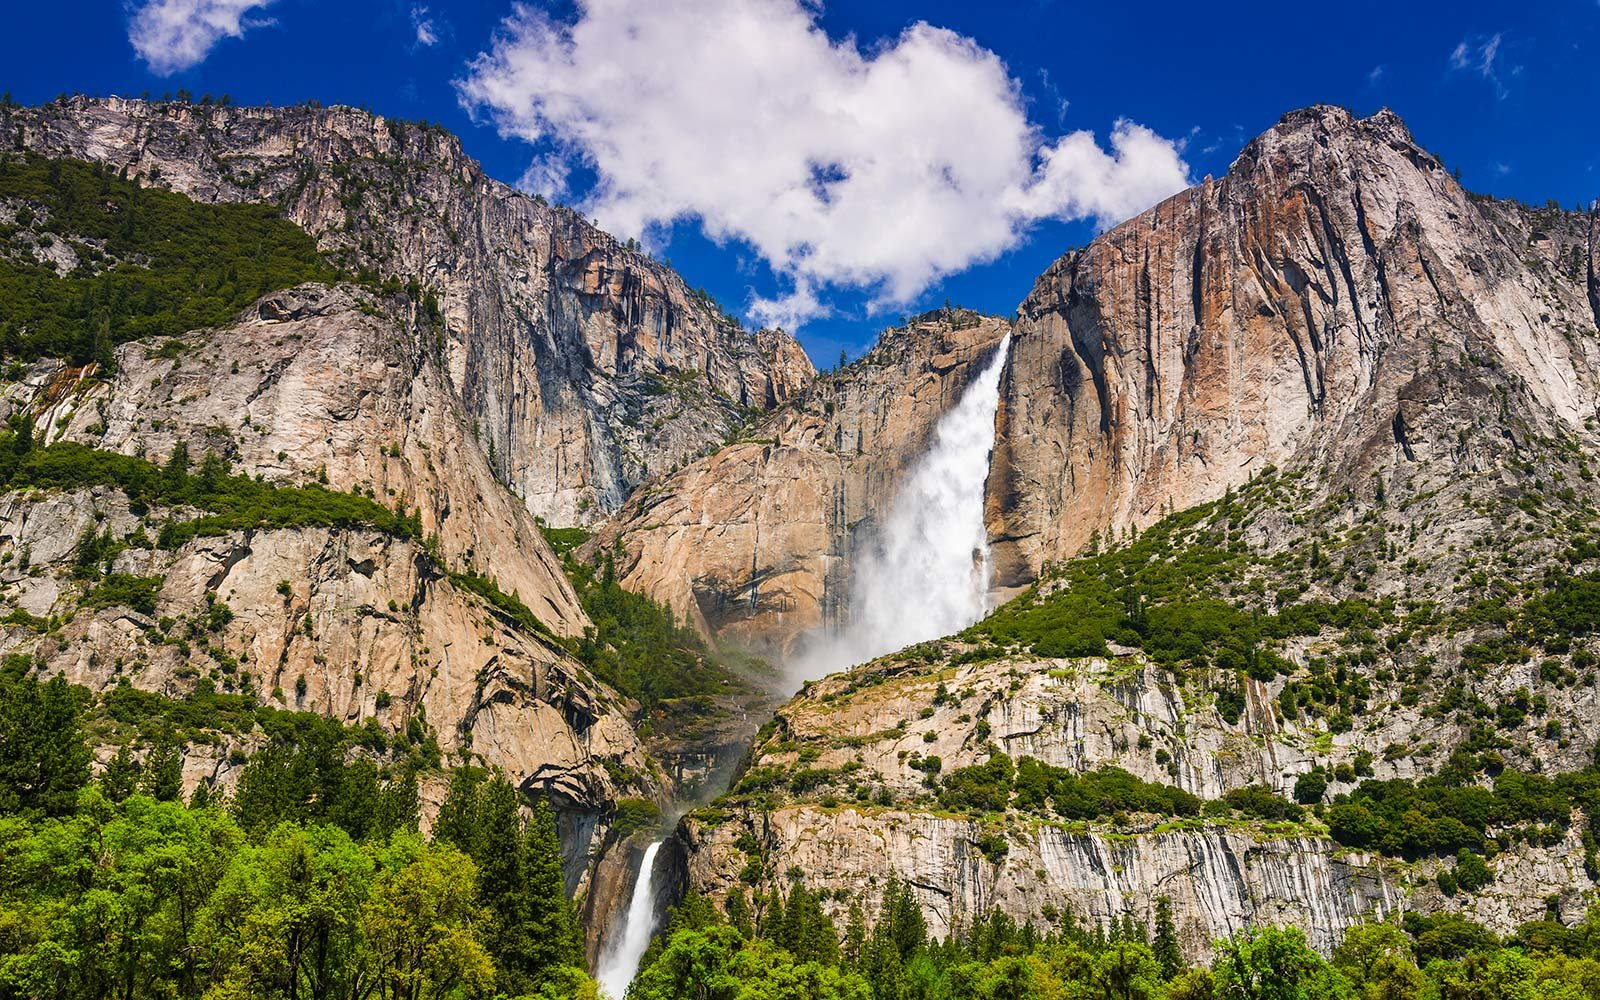 Yosemite Falls in Yosemite National Park